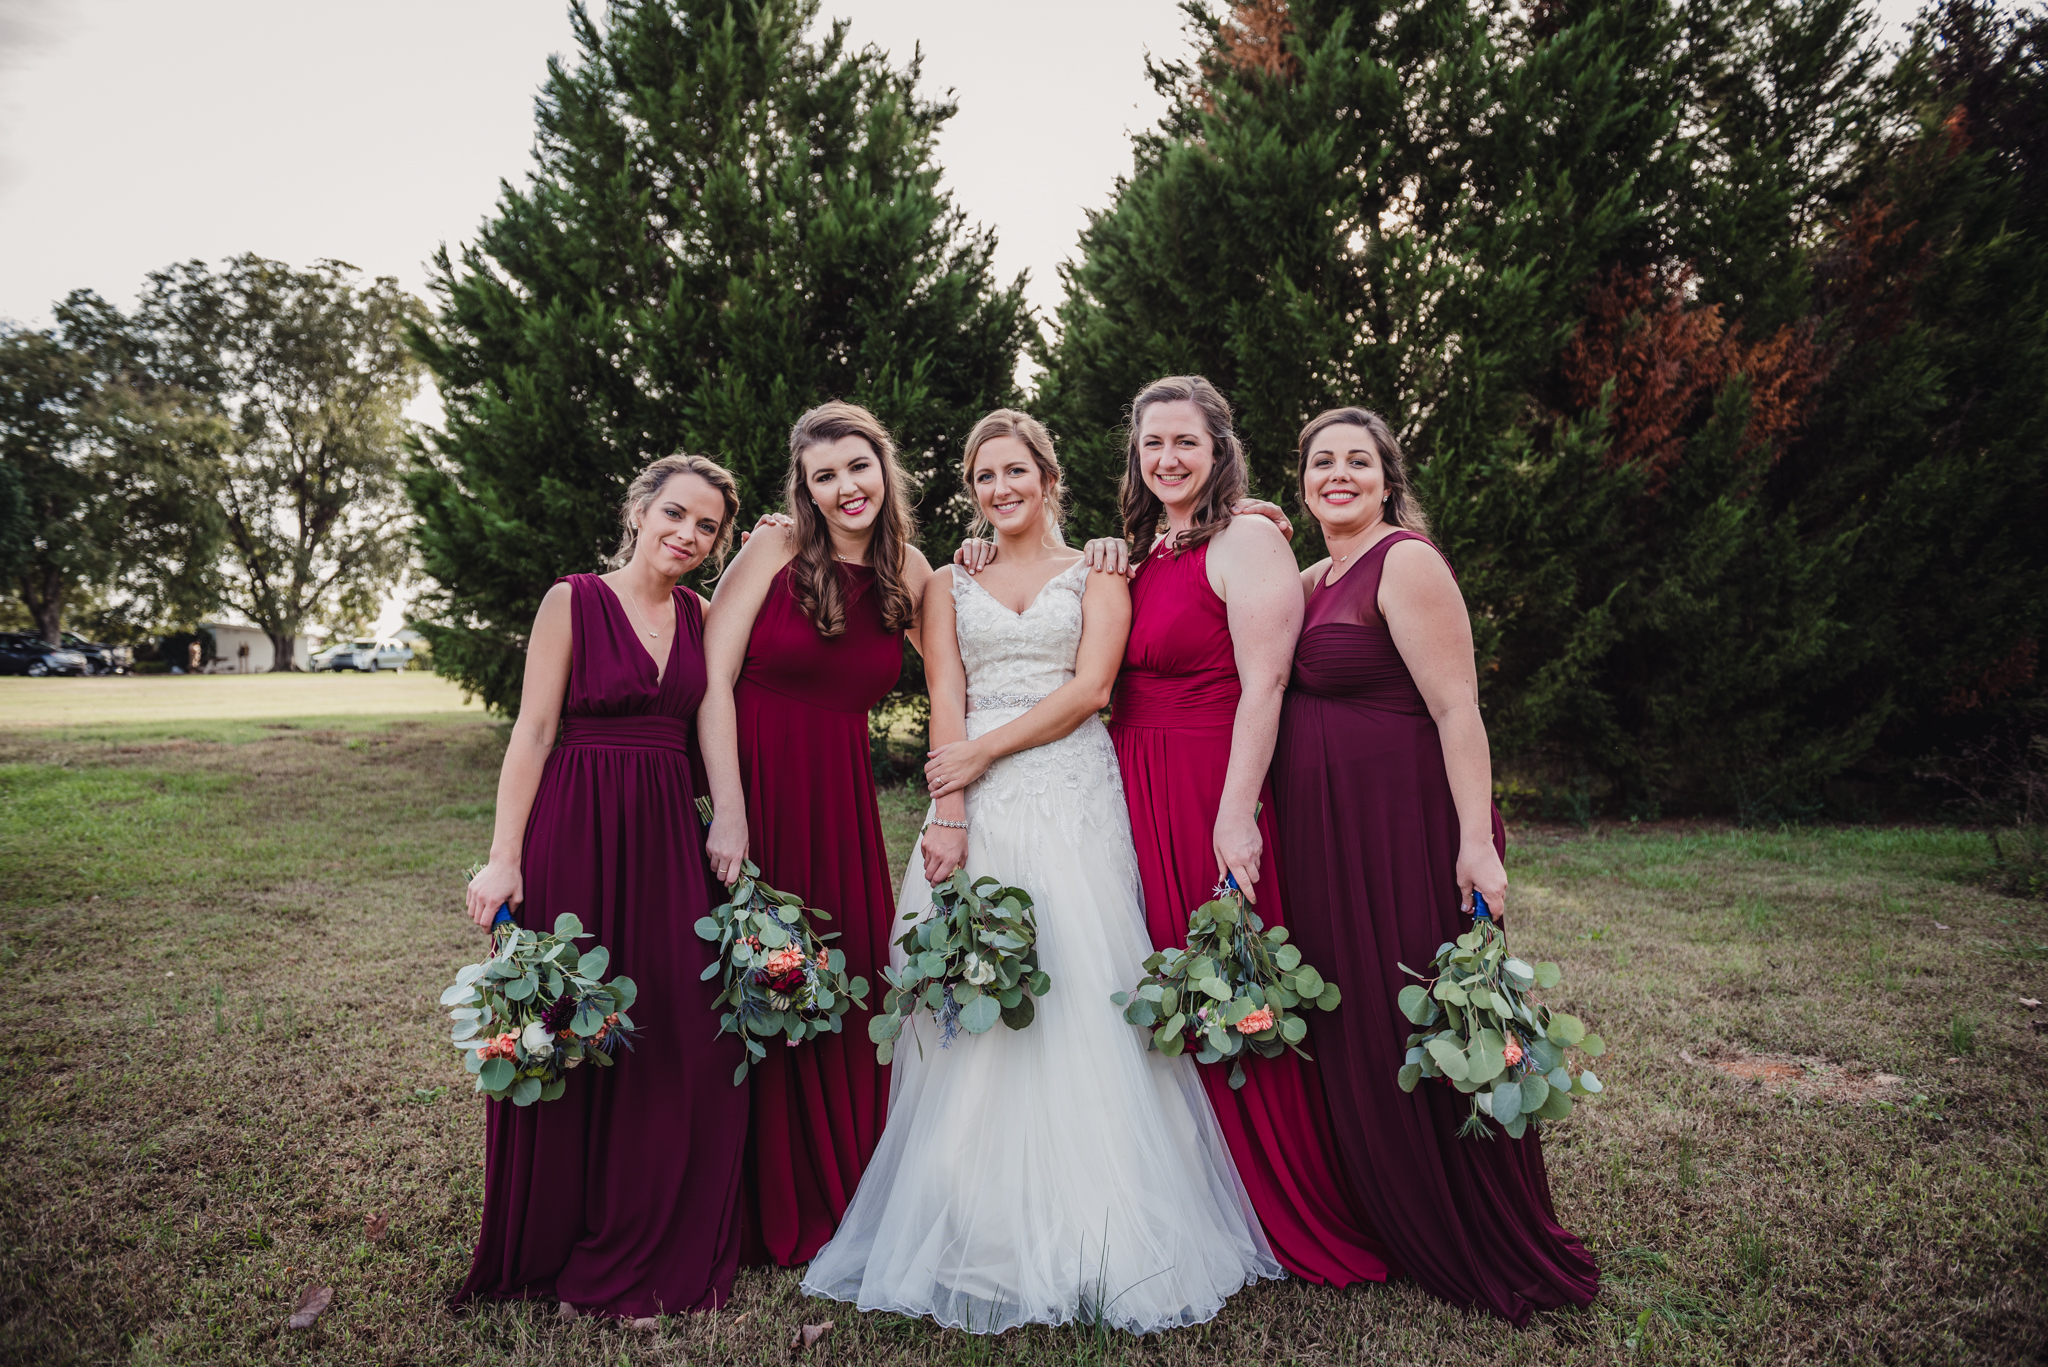 the-bride-and-her-bridesmaids-portrait.jpg